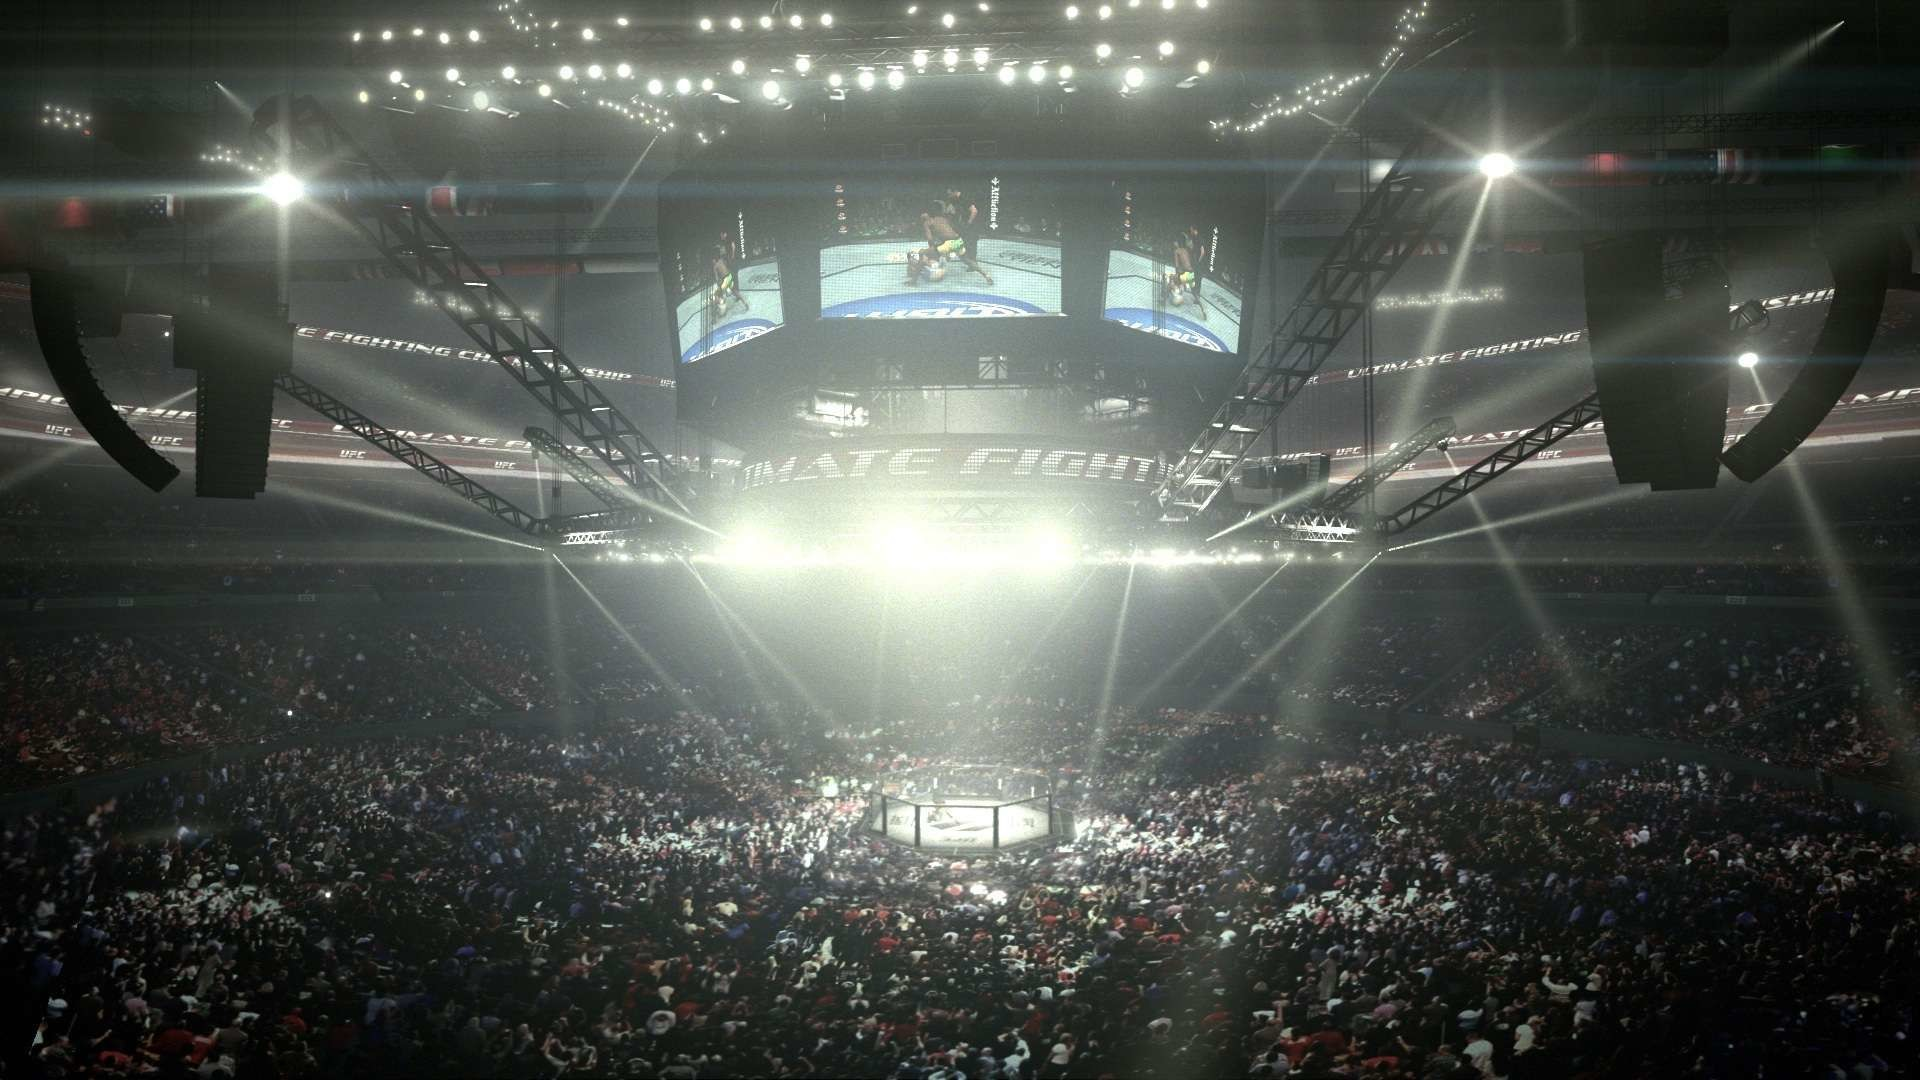 Res: 1920x1080, HD UFC Wallpapers and Photos,  – By Xiao Exner for PC & Mac,  Laptop, Tablet, Mobile Phone